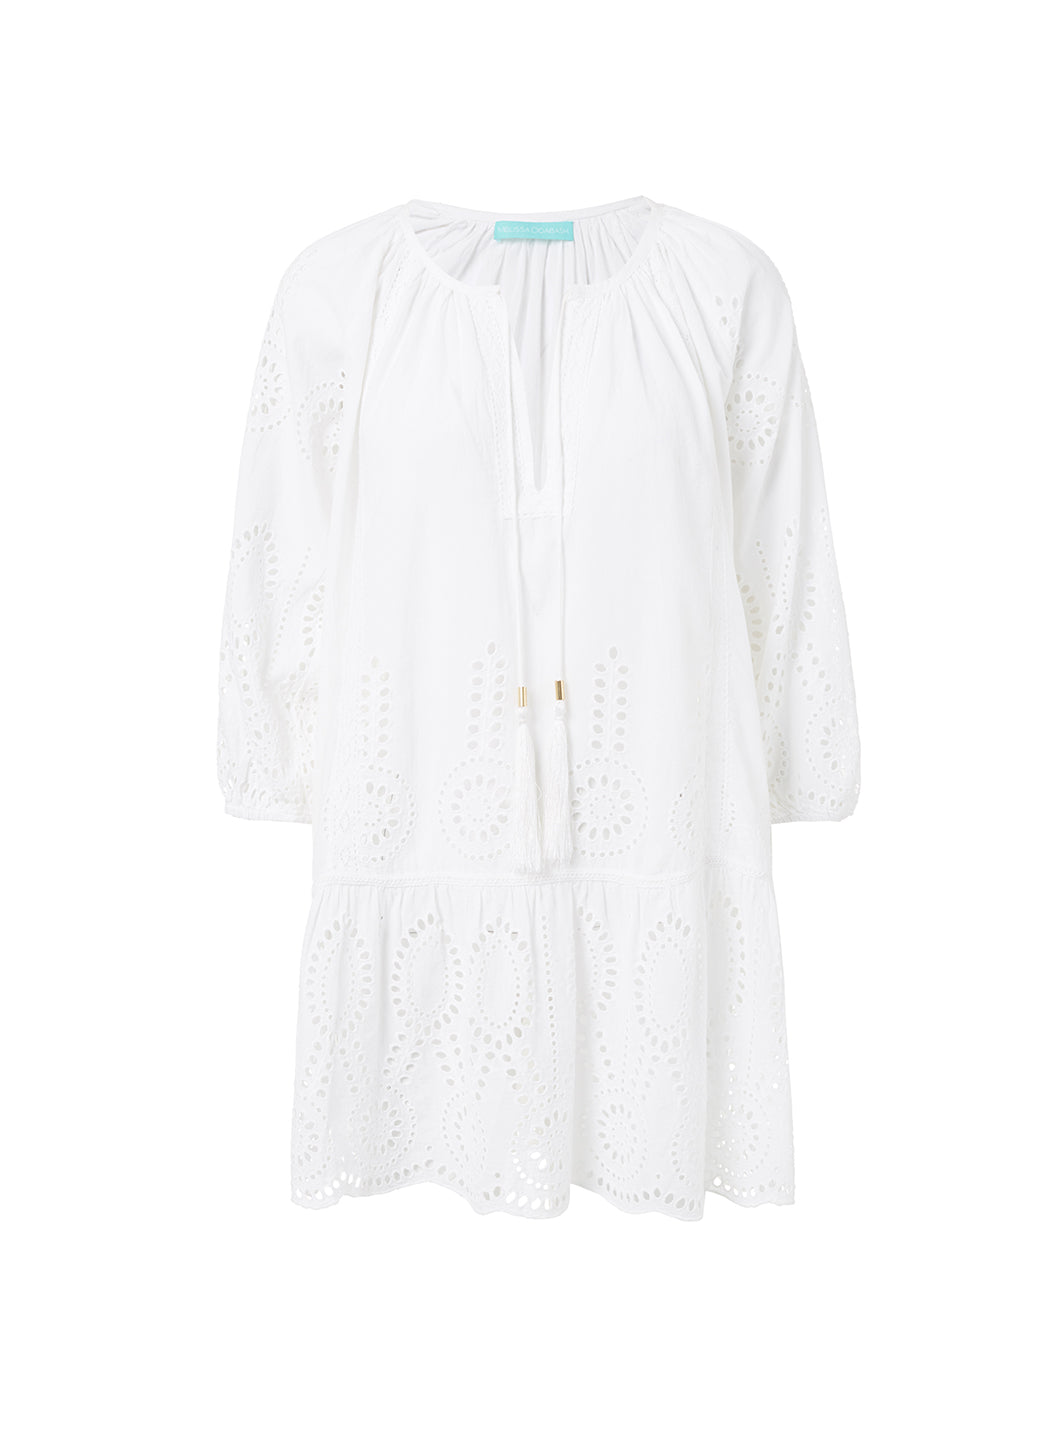 Ashley White Embroidered 3/4 Sleeve Short Cover-Up  - Melissa Odabash Dresses & Kaftans